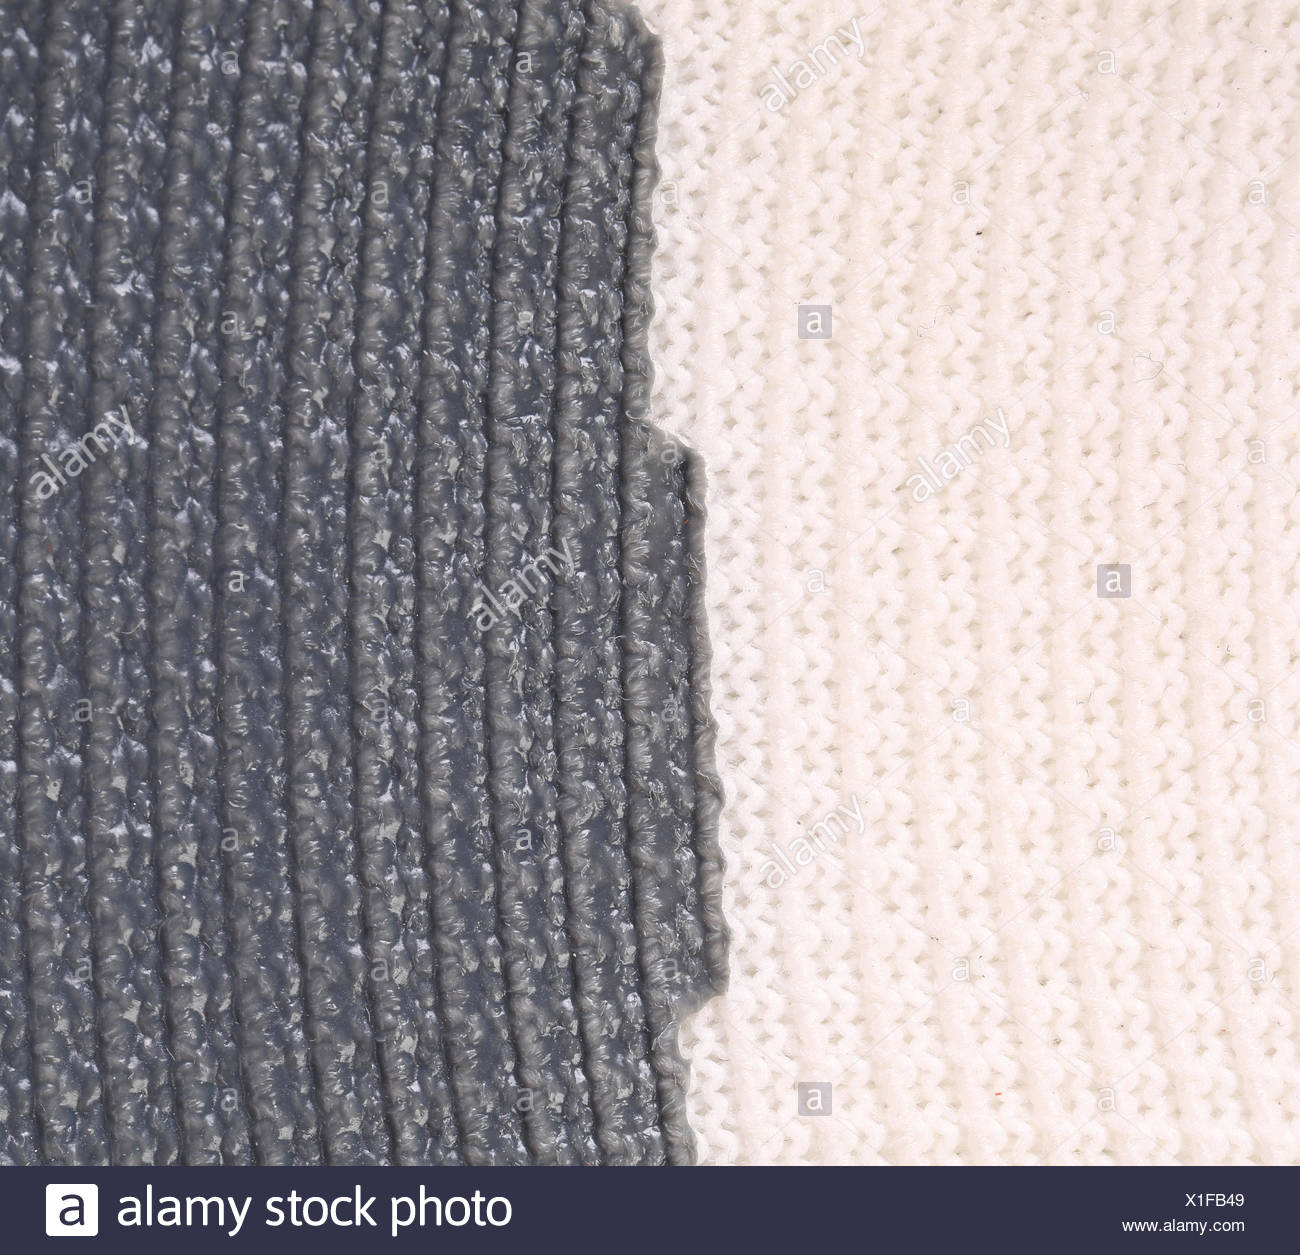 Close up of vertical knitted fabric texture. - Stock Image